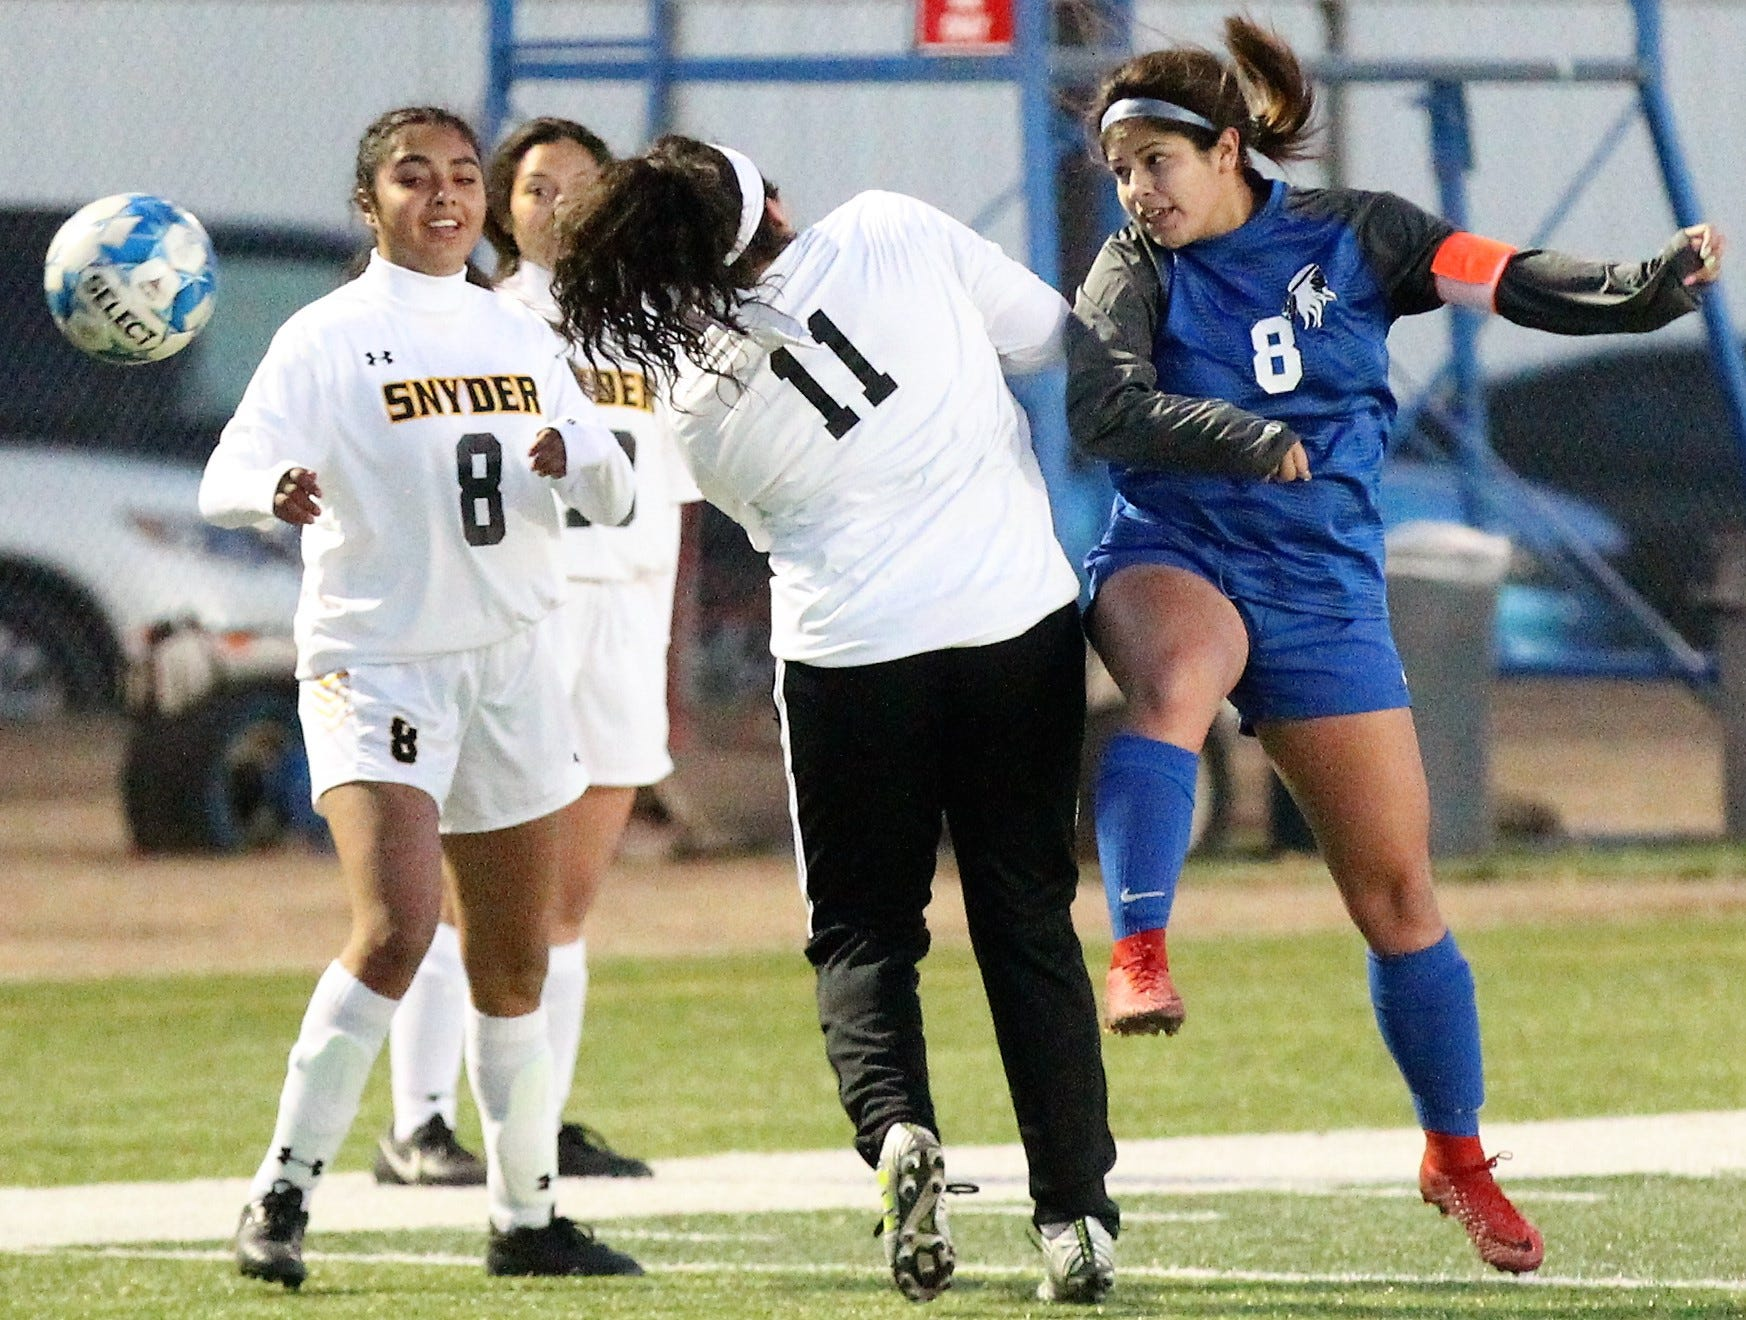 Lake View's Ariana Rangel (right) fights for a header in a District 4-4A soccer match against Snyder at Old Bobcat Stadium on Tuesday, March 5, 2019.